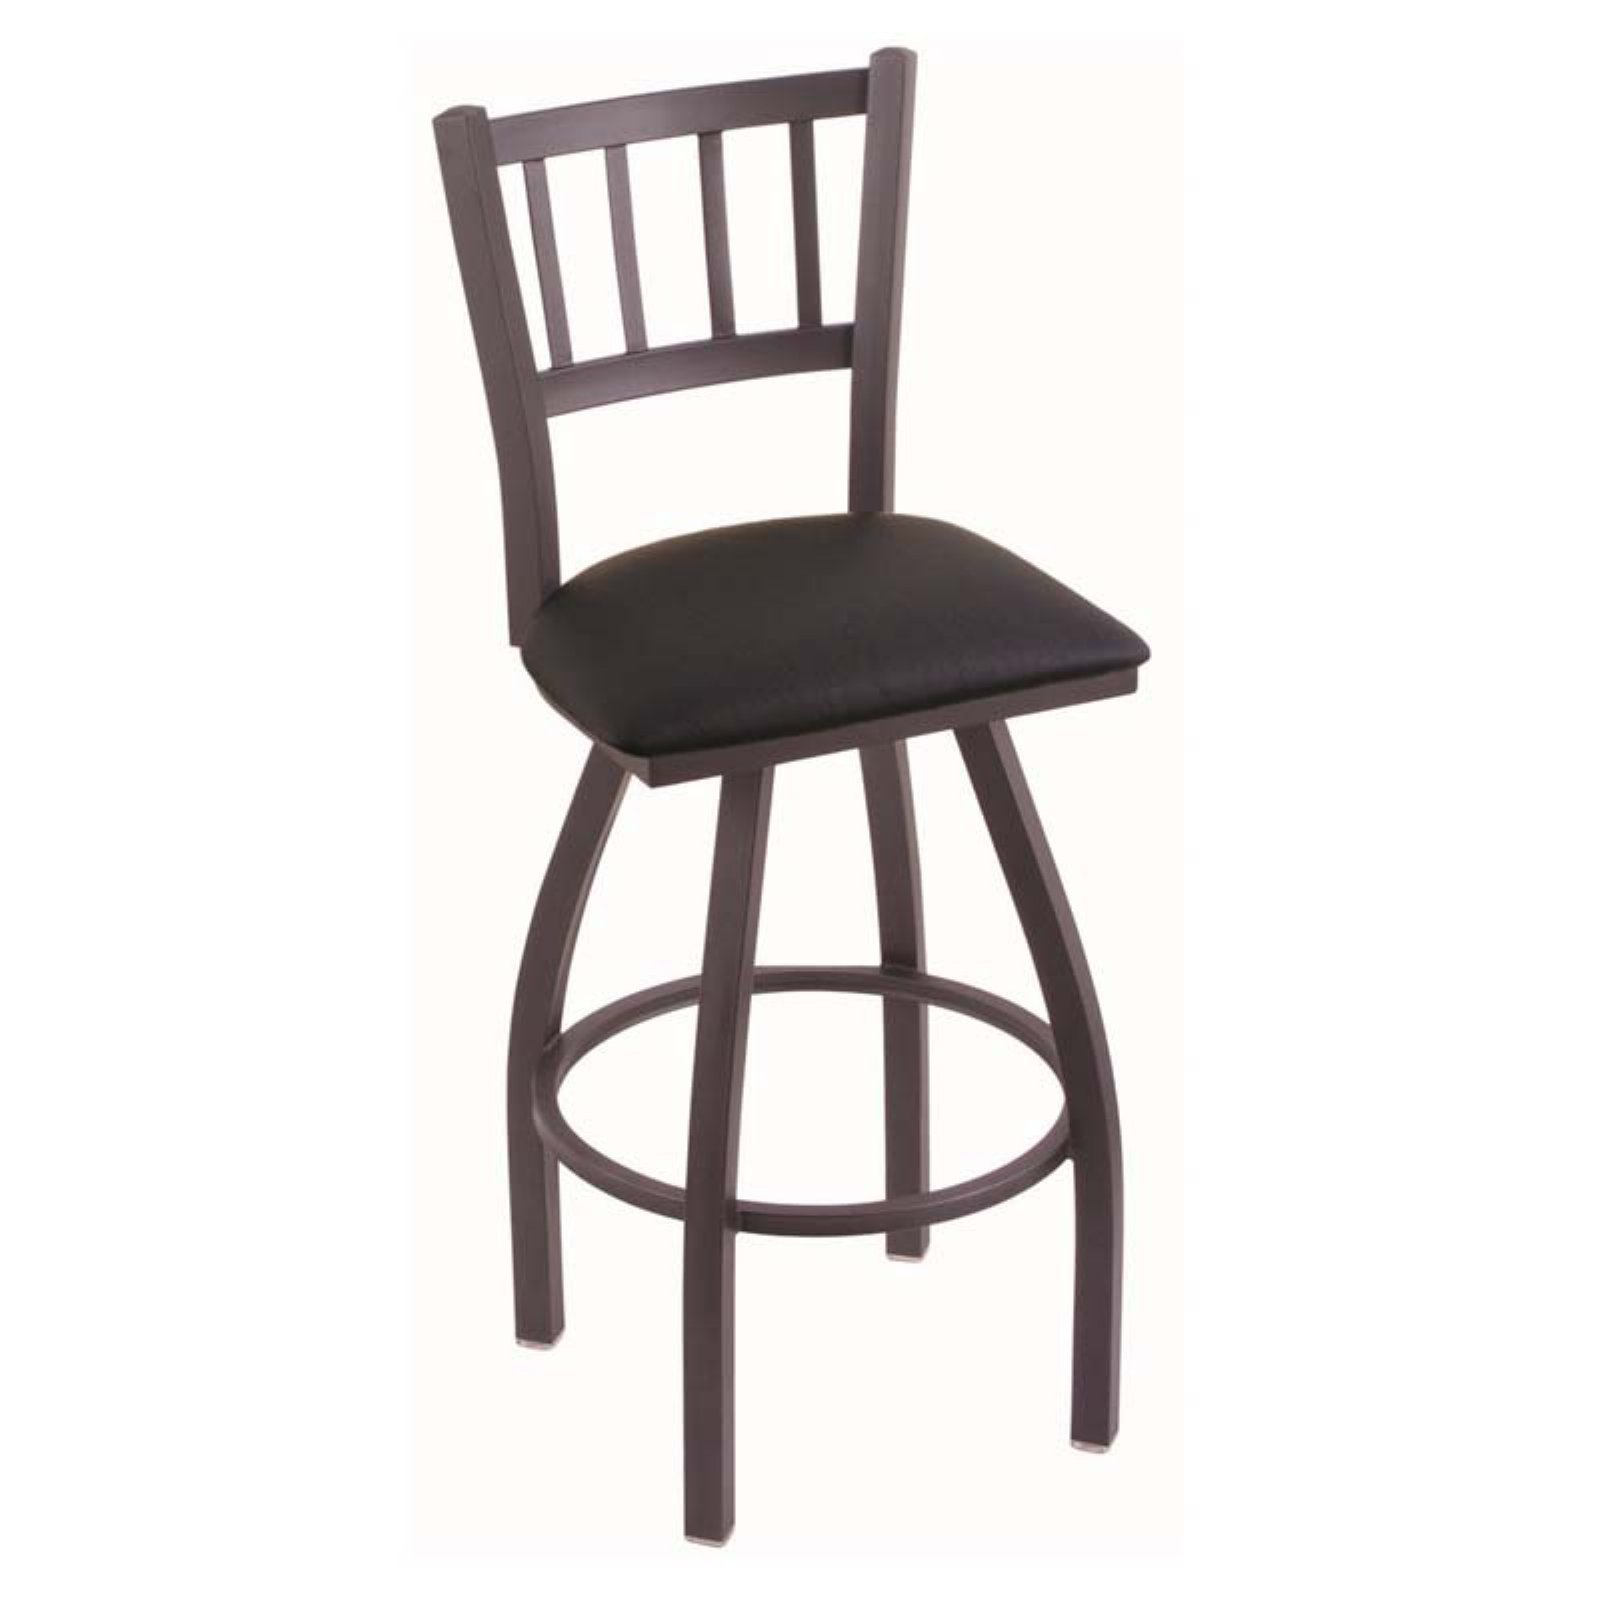 Holland Bar Stool Contessa 36 in. Extra Tall Swivel Bar Stool with Faux Leather Seat